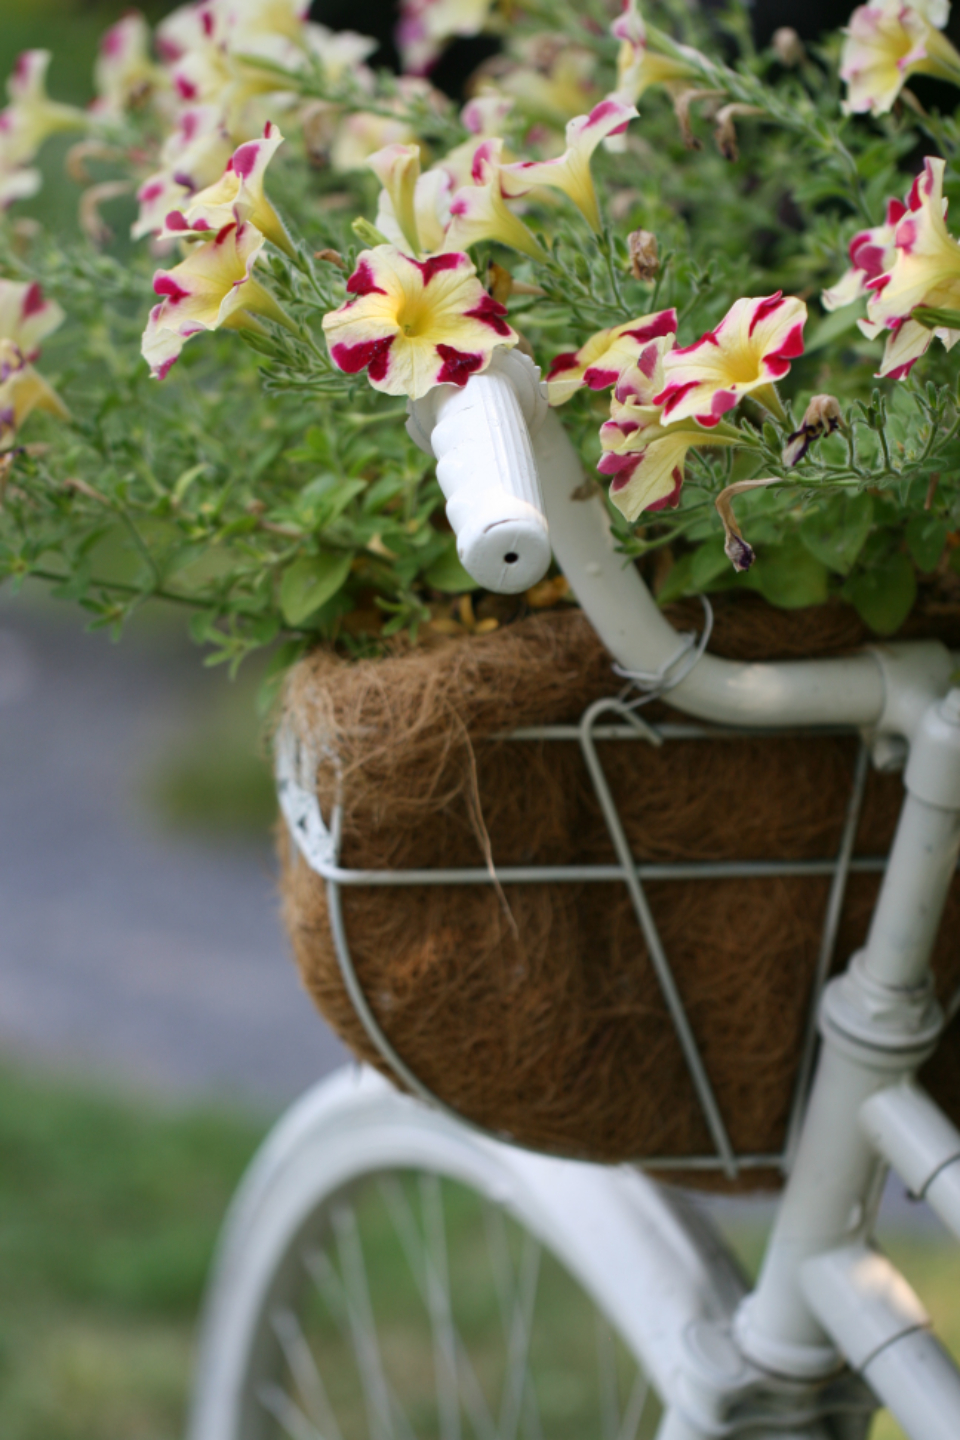 old bicycle flowers retro decoration basket vintage outdoors antique summer plant nature